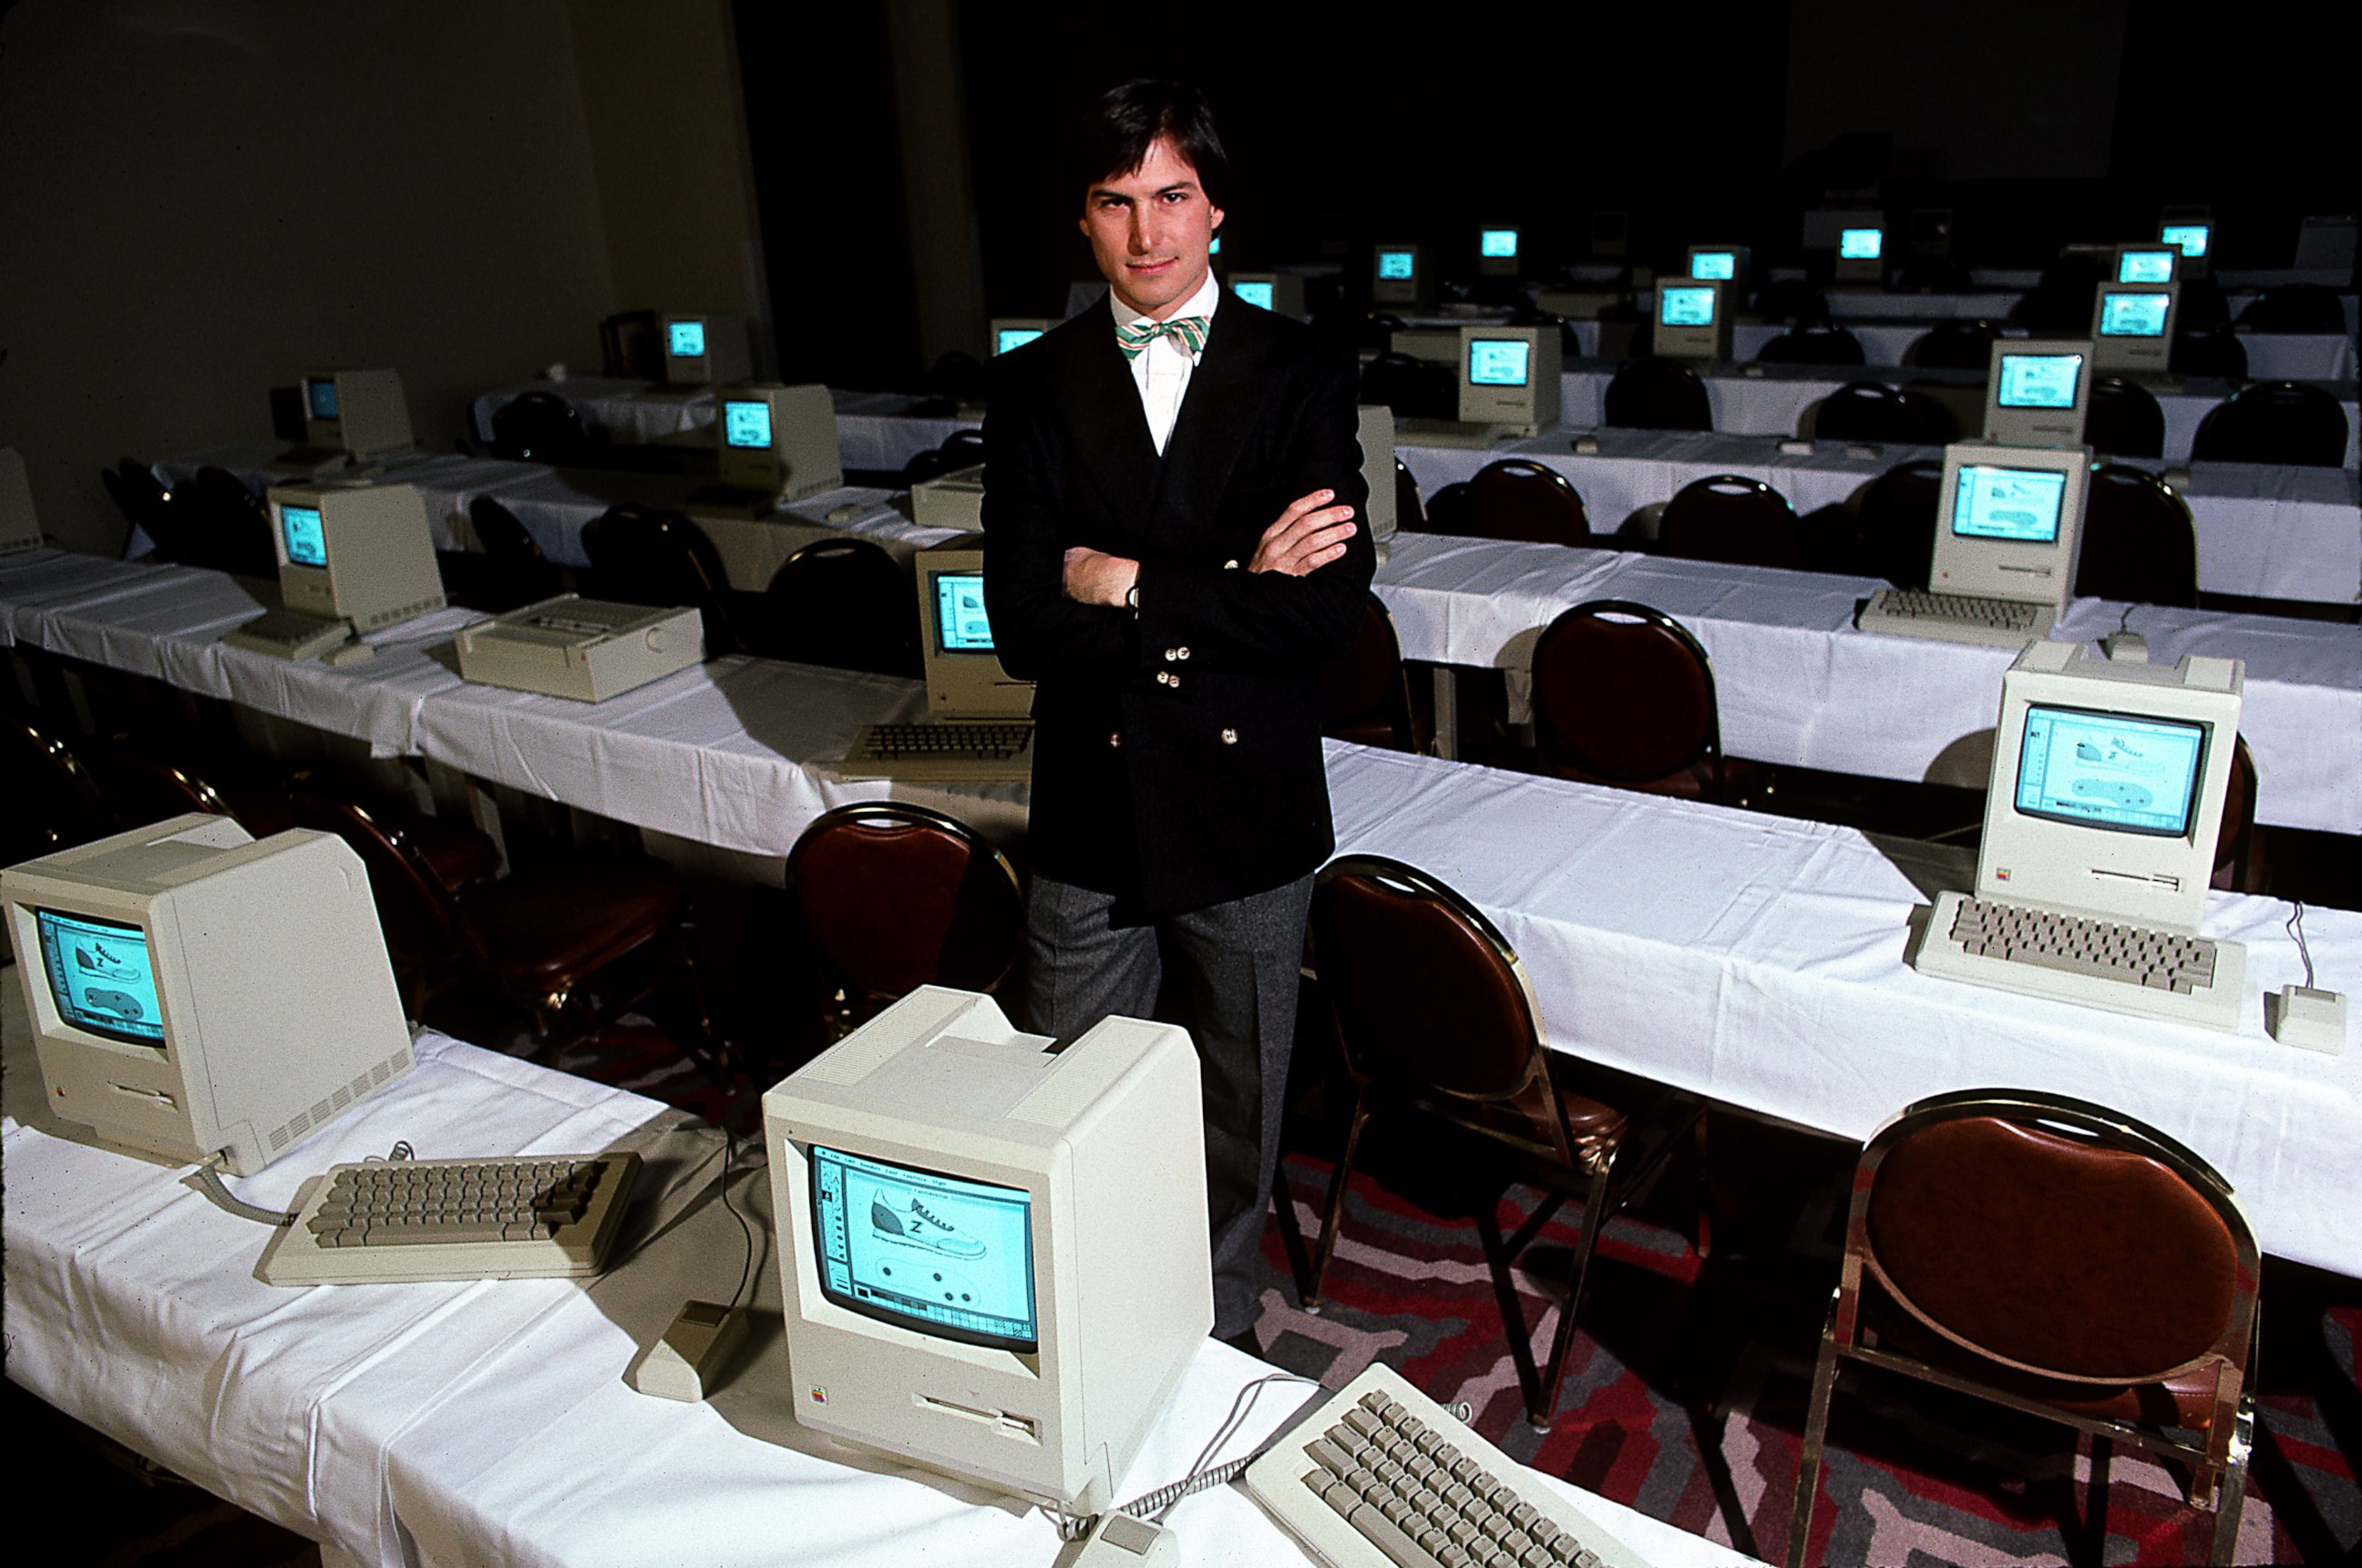 steve jobs videos at abc news video archive at abcnews com photo steve jobs room full of computers in 1984